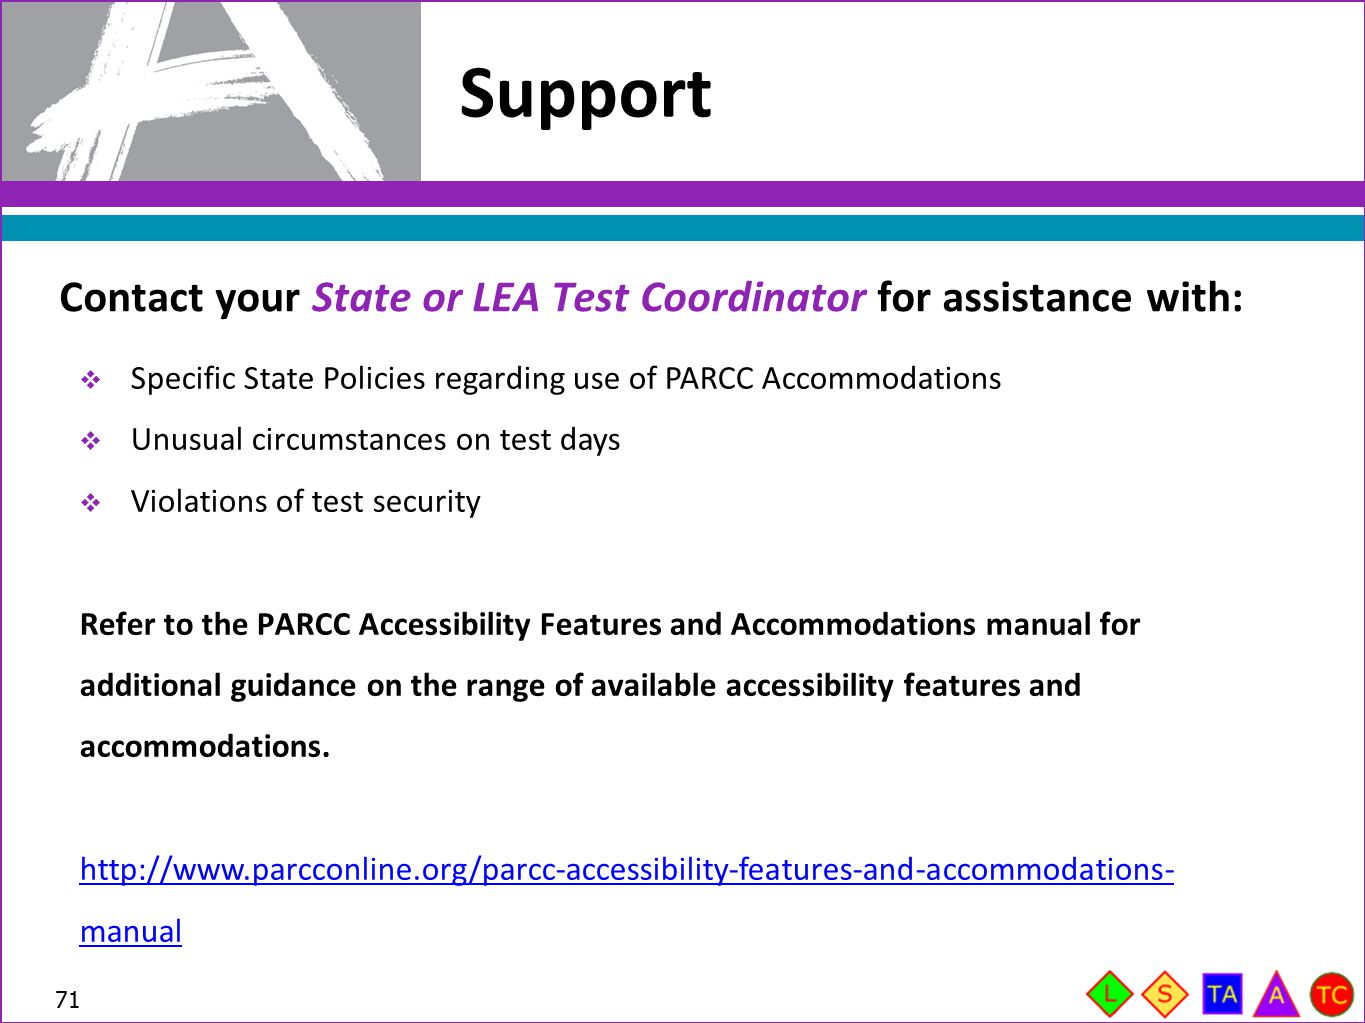 Support Contact your State or LEA Test Coordinator for assistance with: Specific State Policies regarding use of PARCC Accommodations.